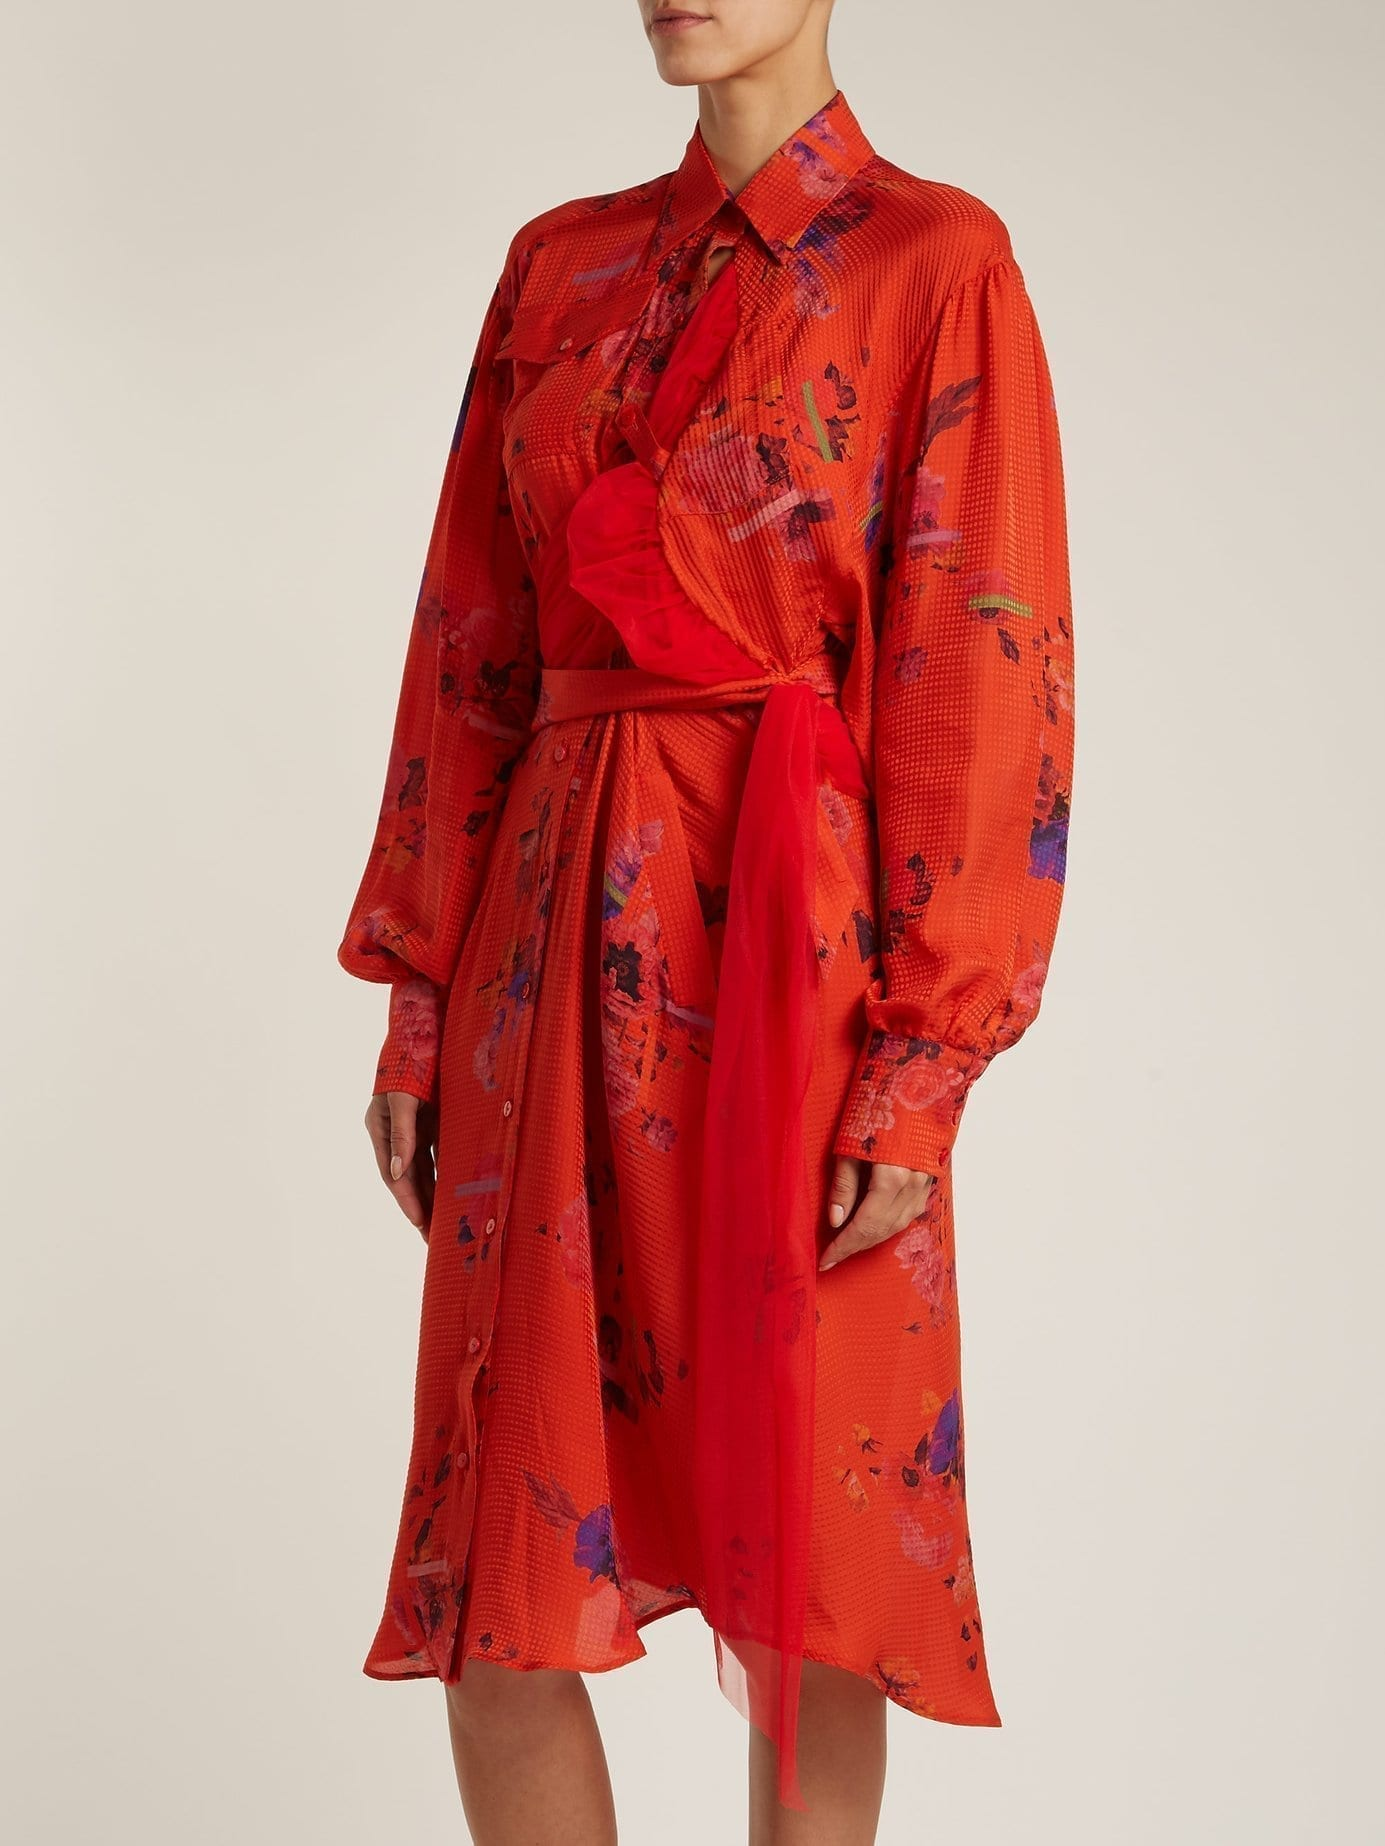 Completely new PREEN BY THORNTON BREGAZZI Susanna Silk Shirt Red / Floral Printed  LM22